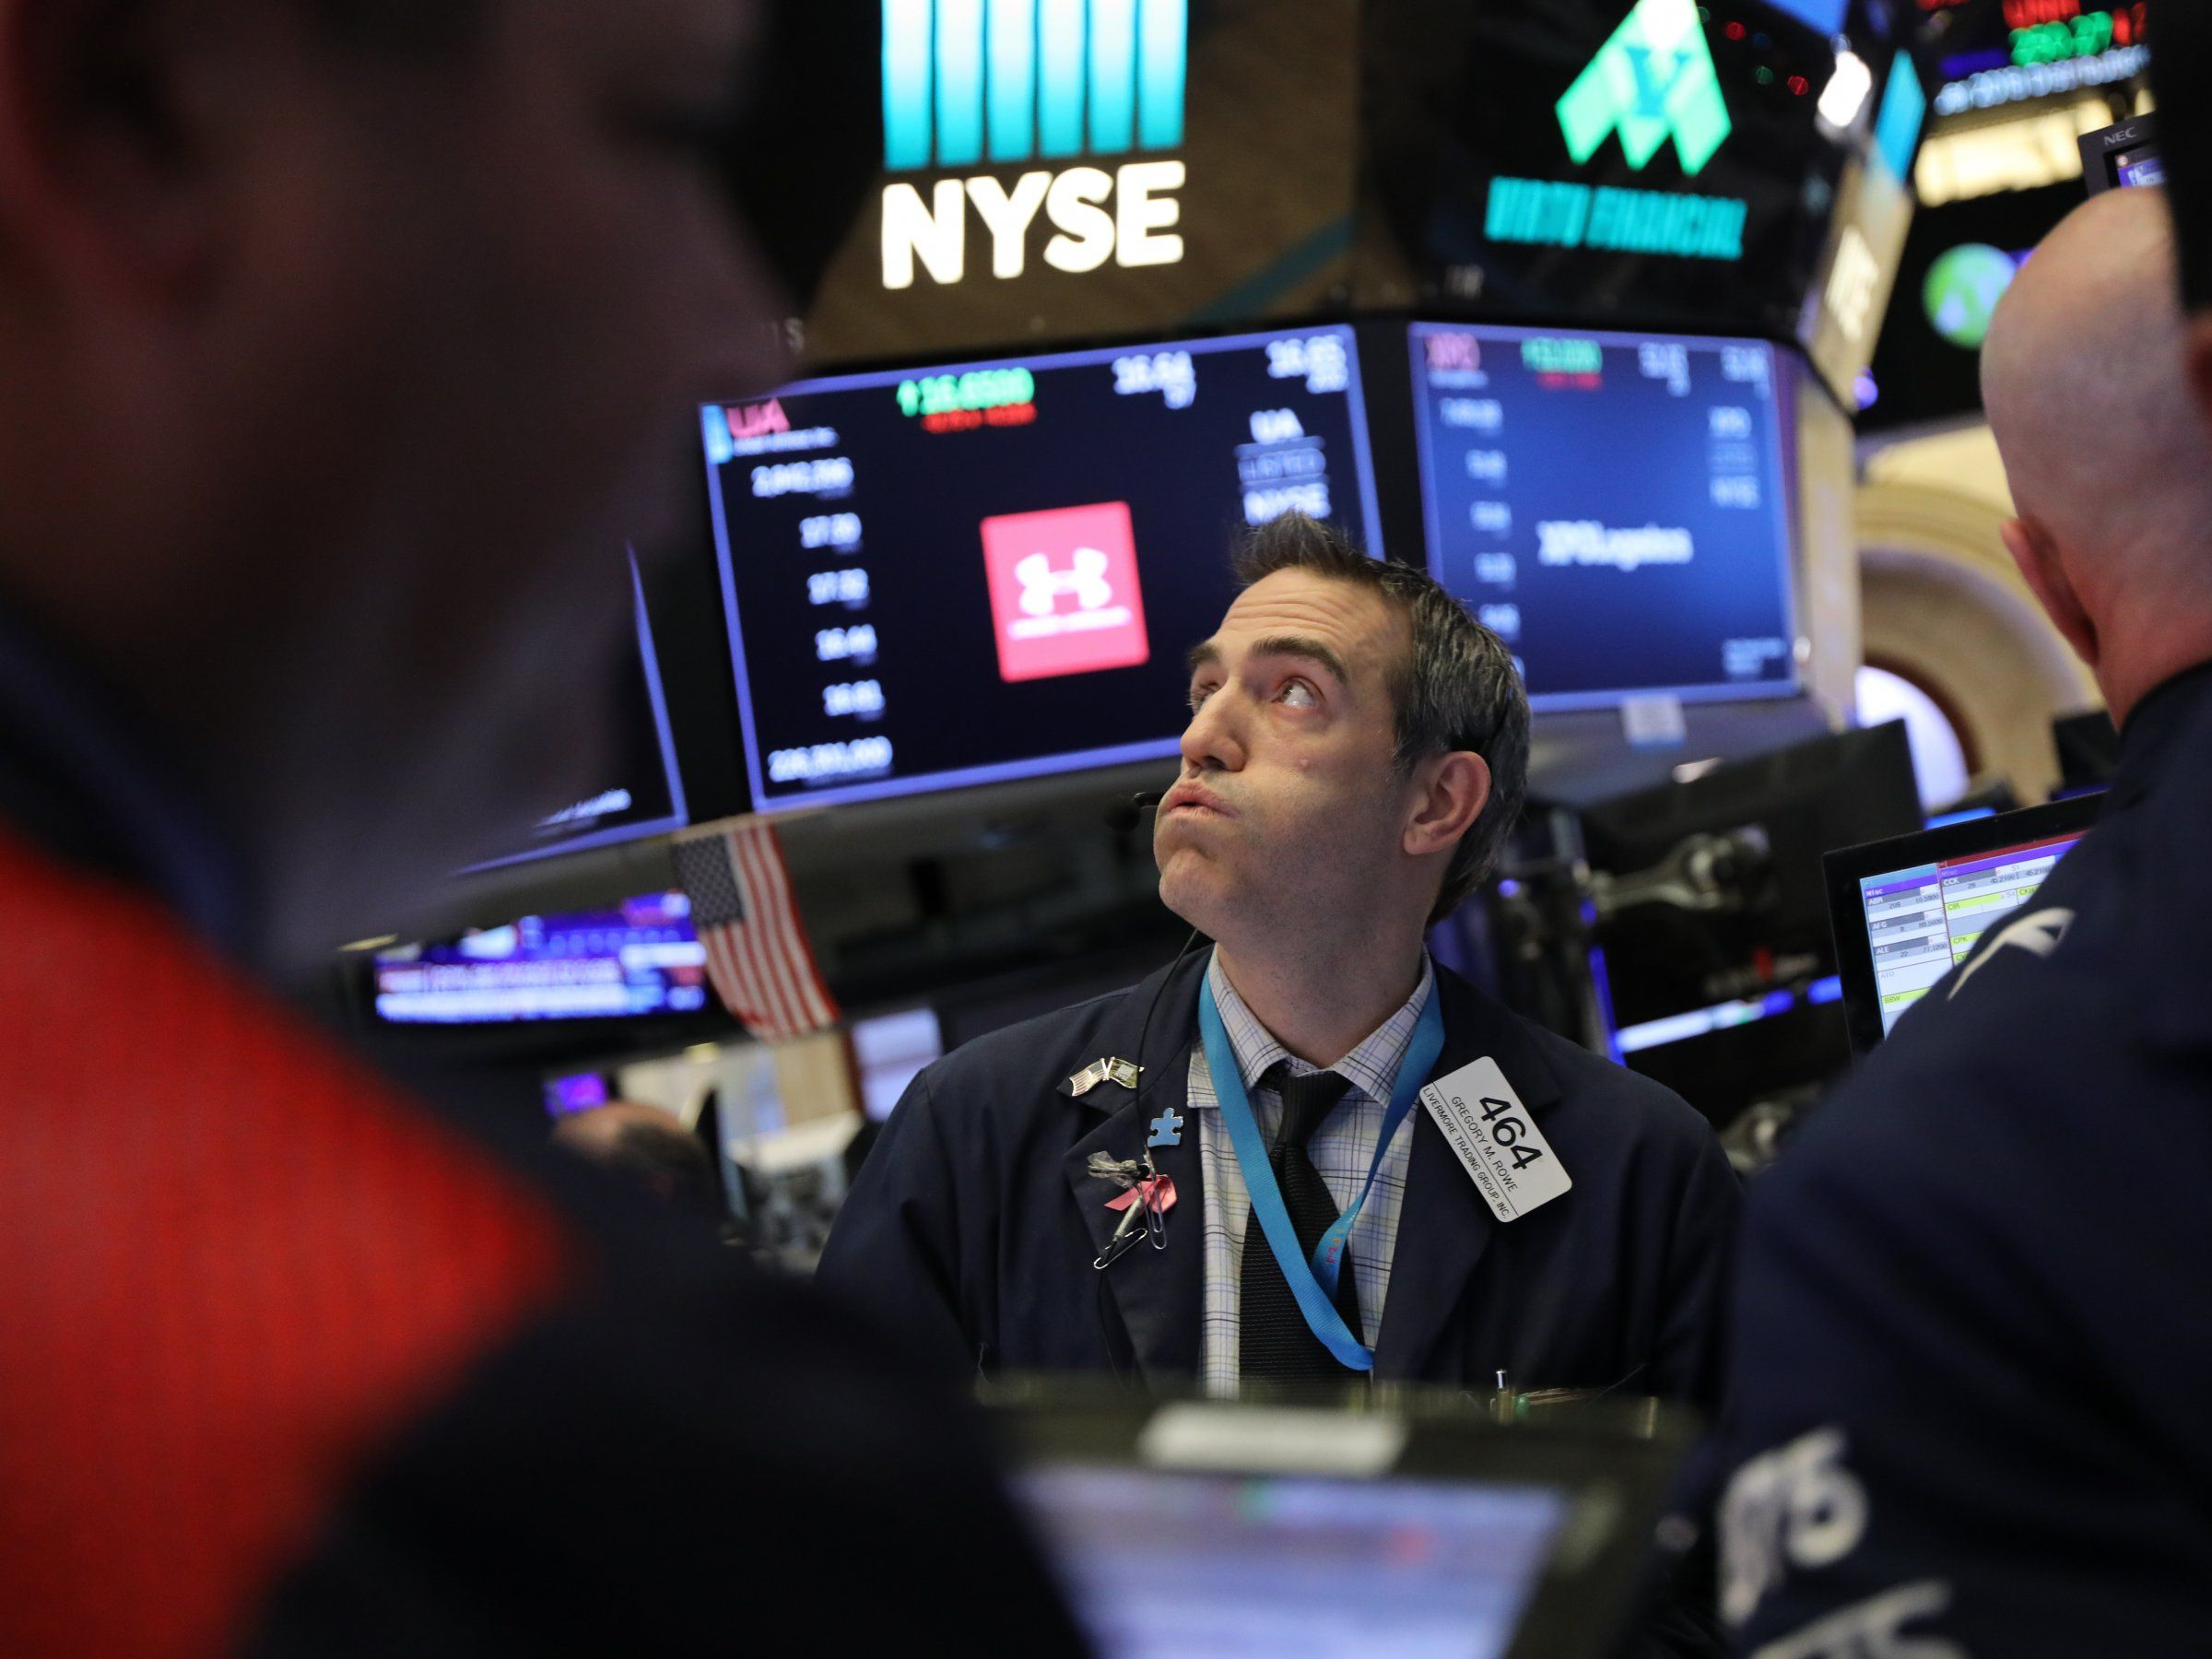 The Nasdaq is flirting with bearmarket territory for